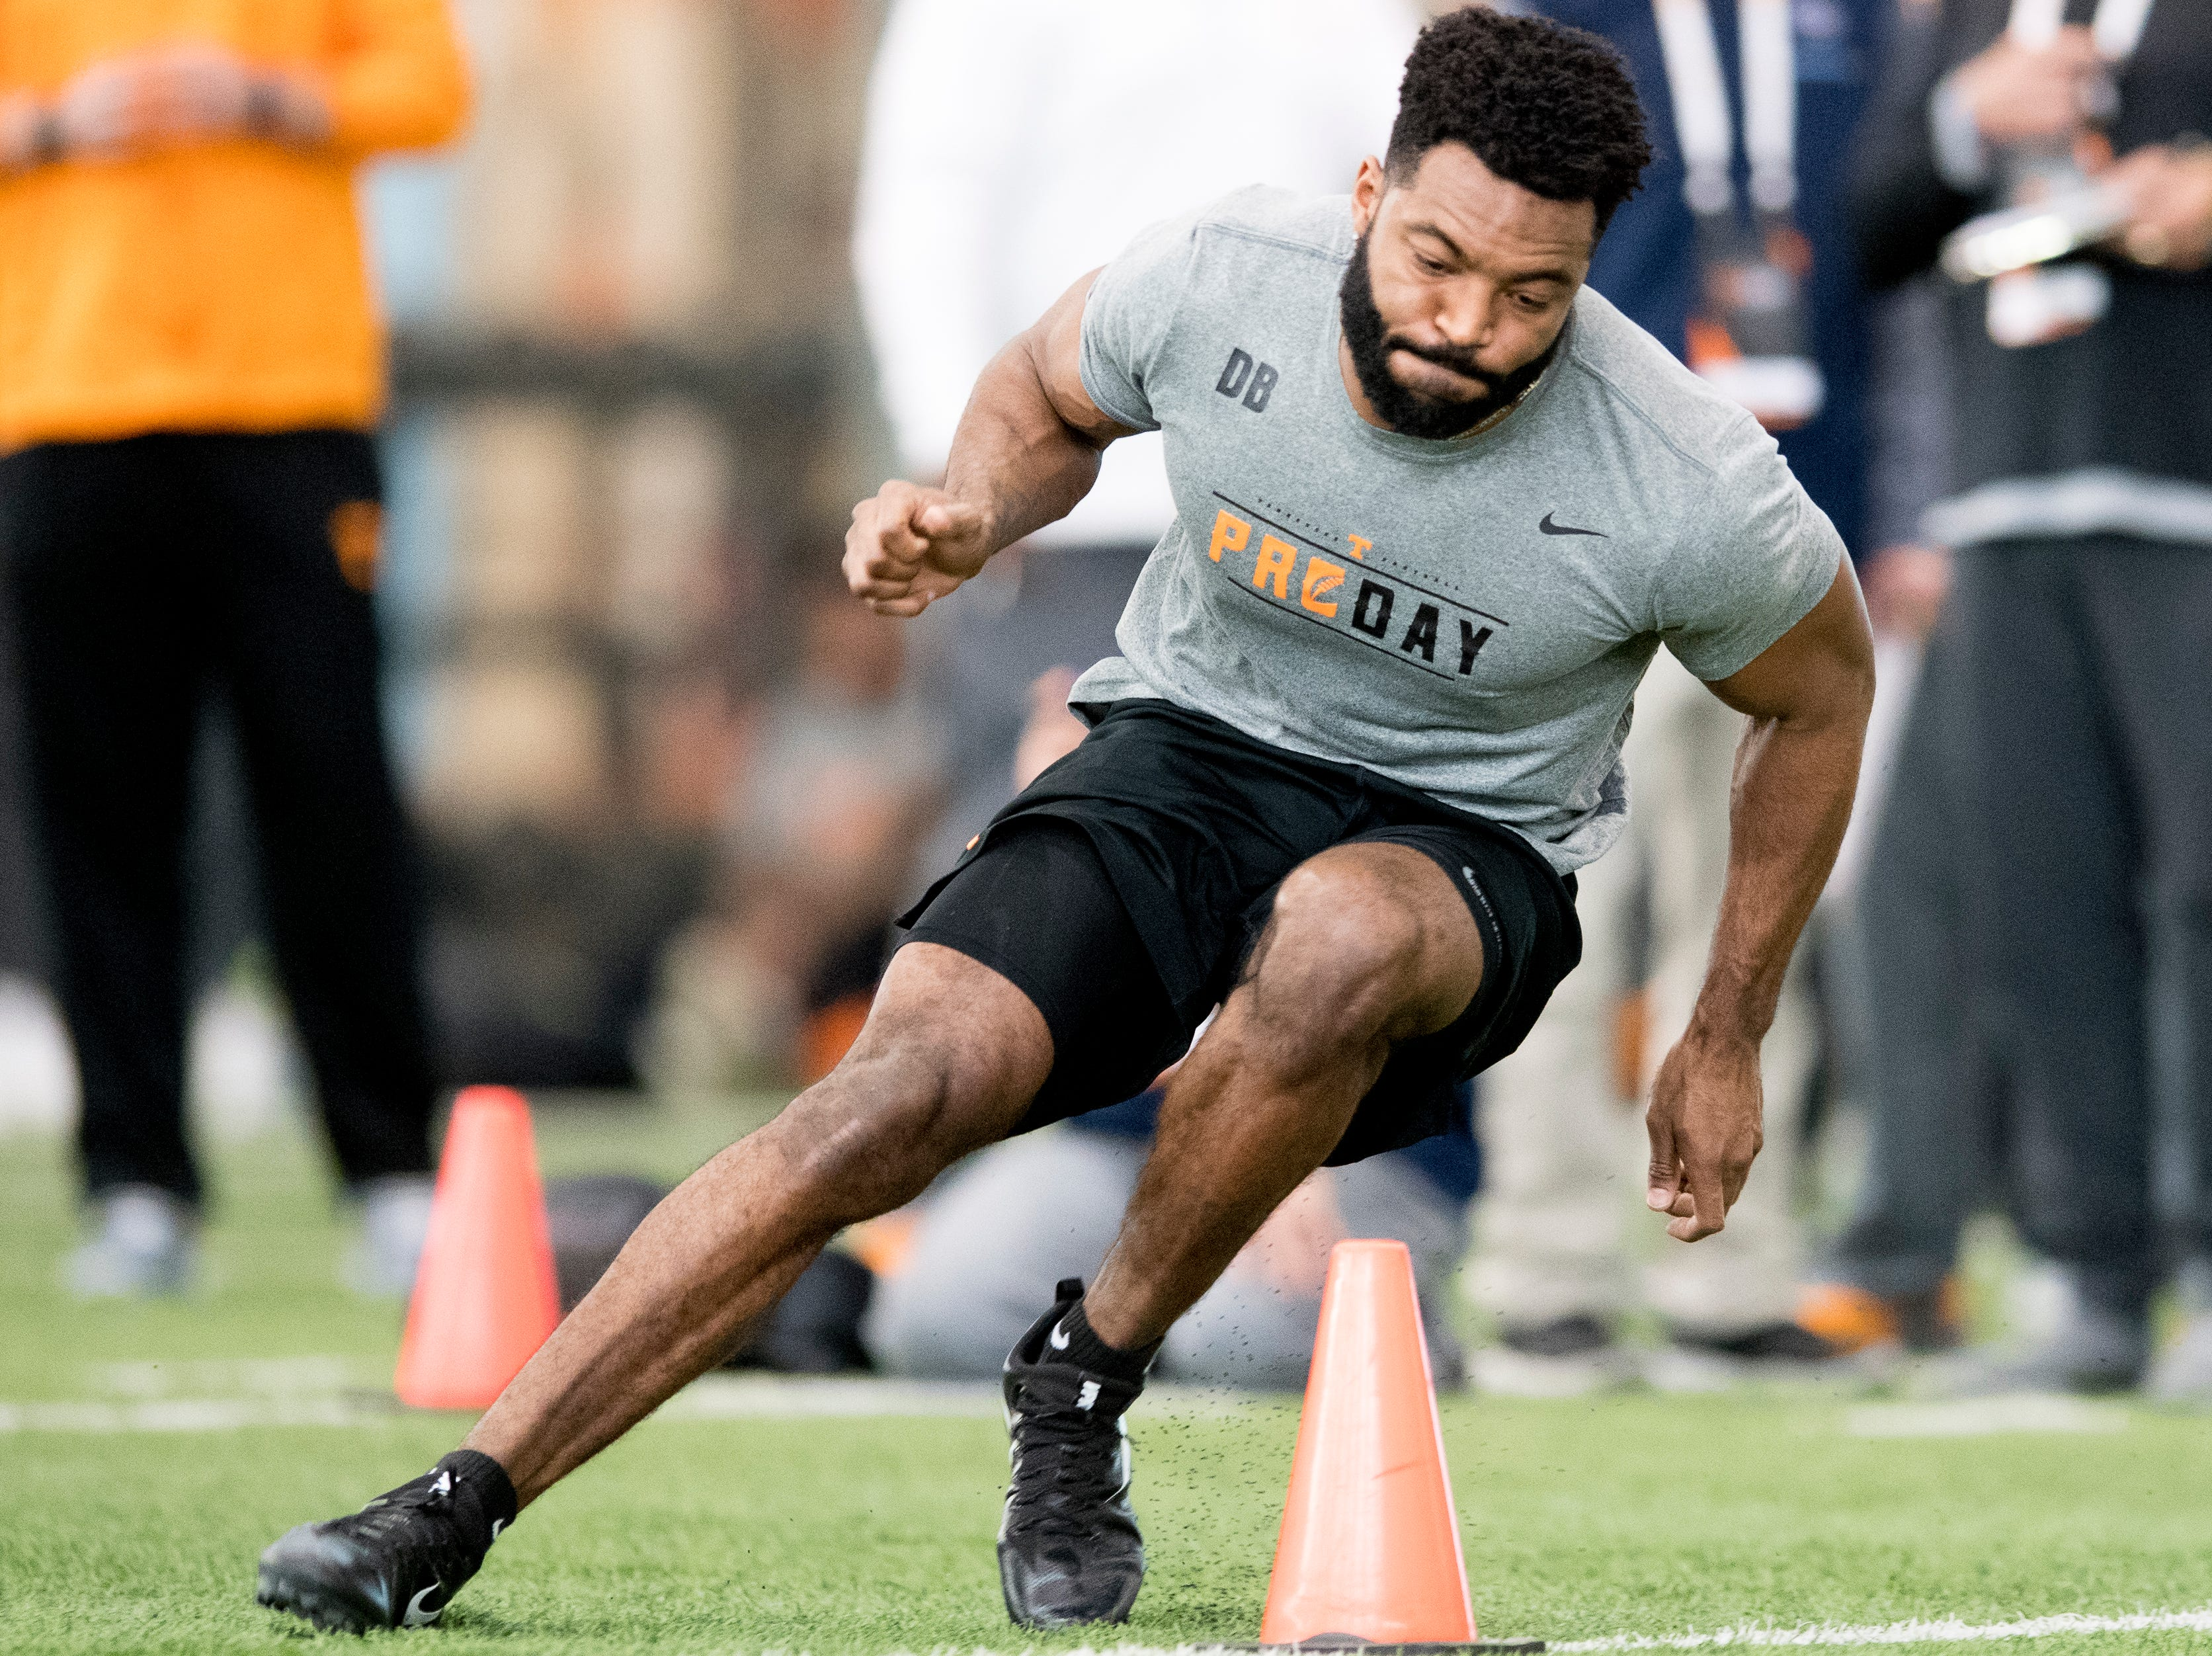 Micah Abernathy does the three-cone-drill at Tennessee Pro Day at Anderson Training Facility in Knoxville, Tennessee on Thursday, March 14, 2019. Draft prospects from Tennessee and other schools worked out before NFL scouts.